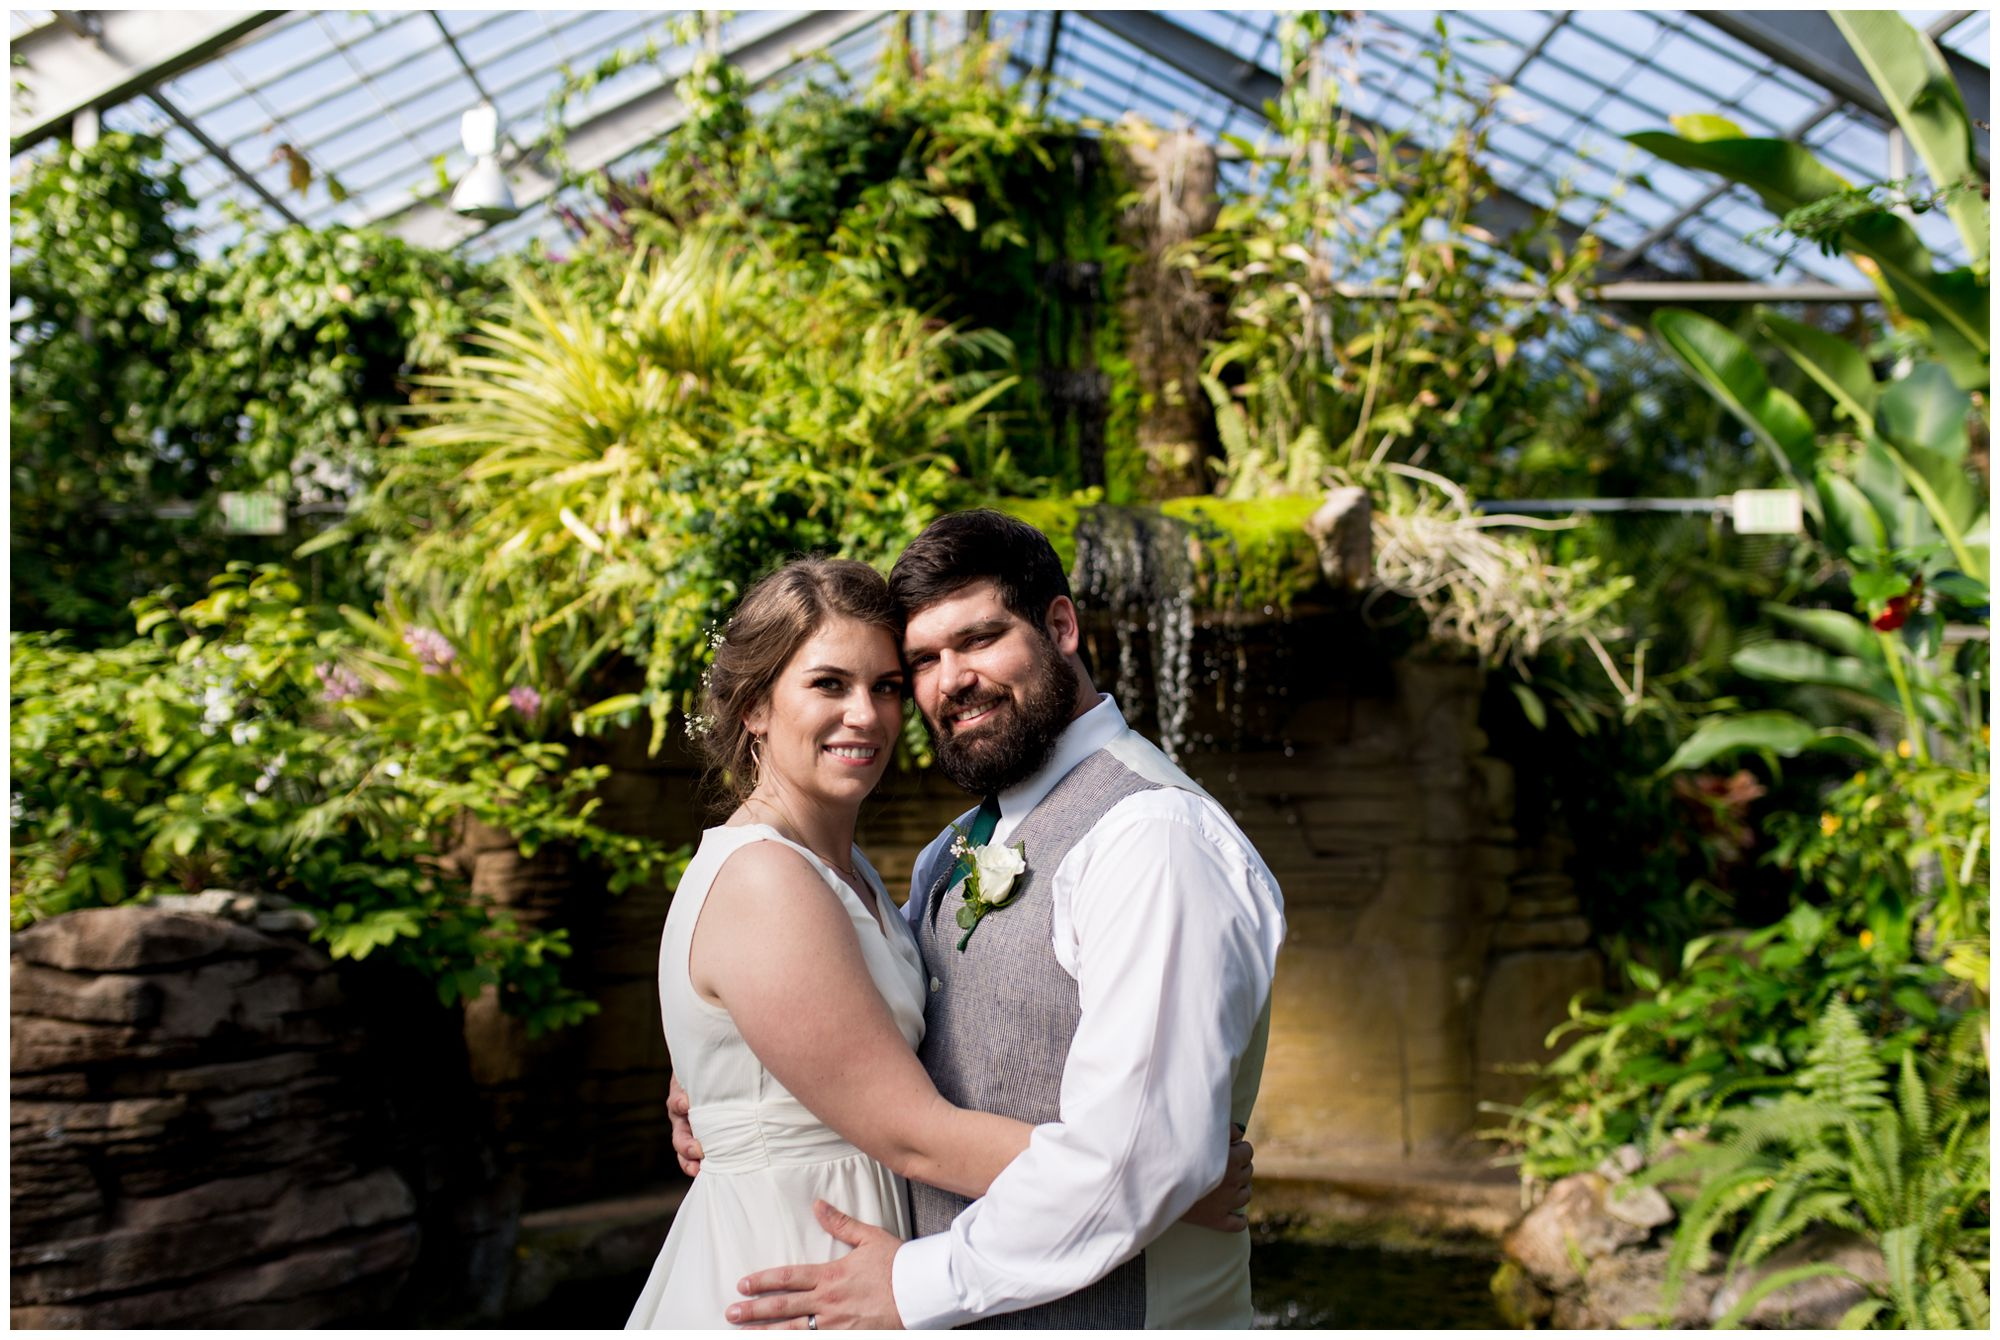 bride and groom wedding photos at Garfield Park Conservatory in Indianapolis